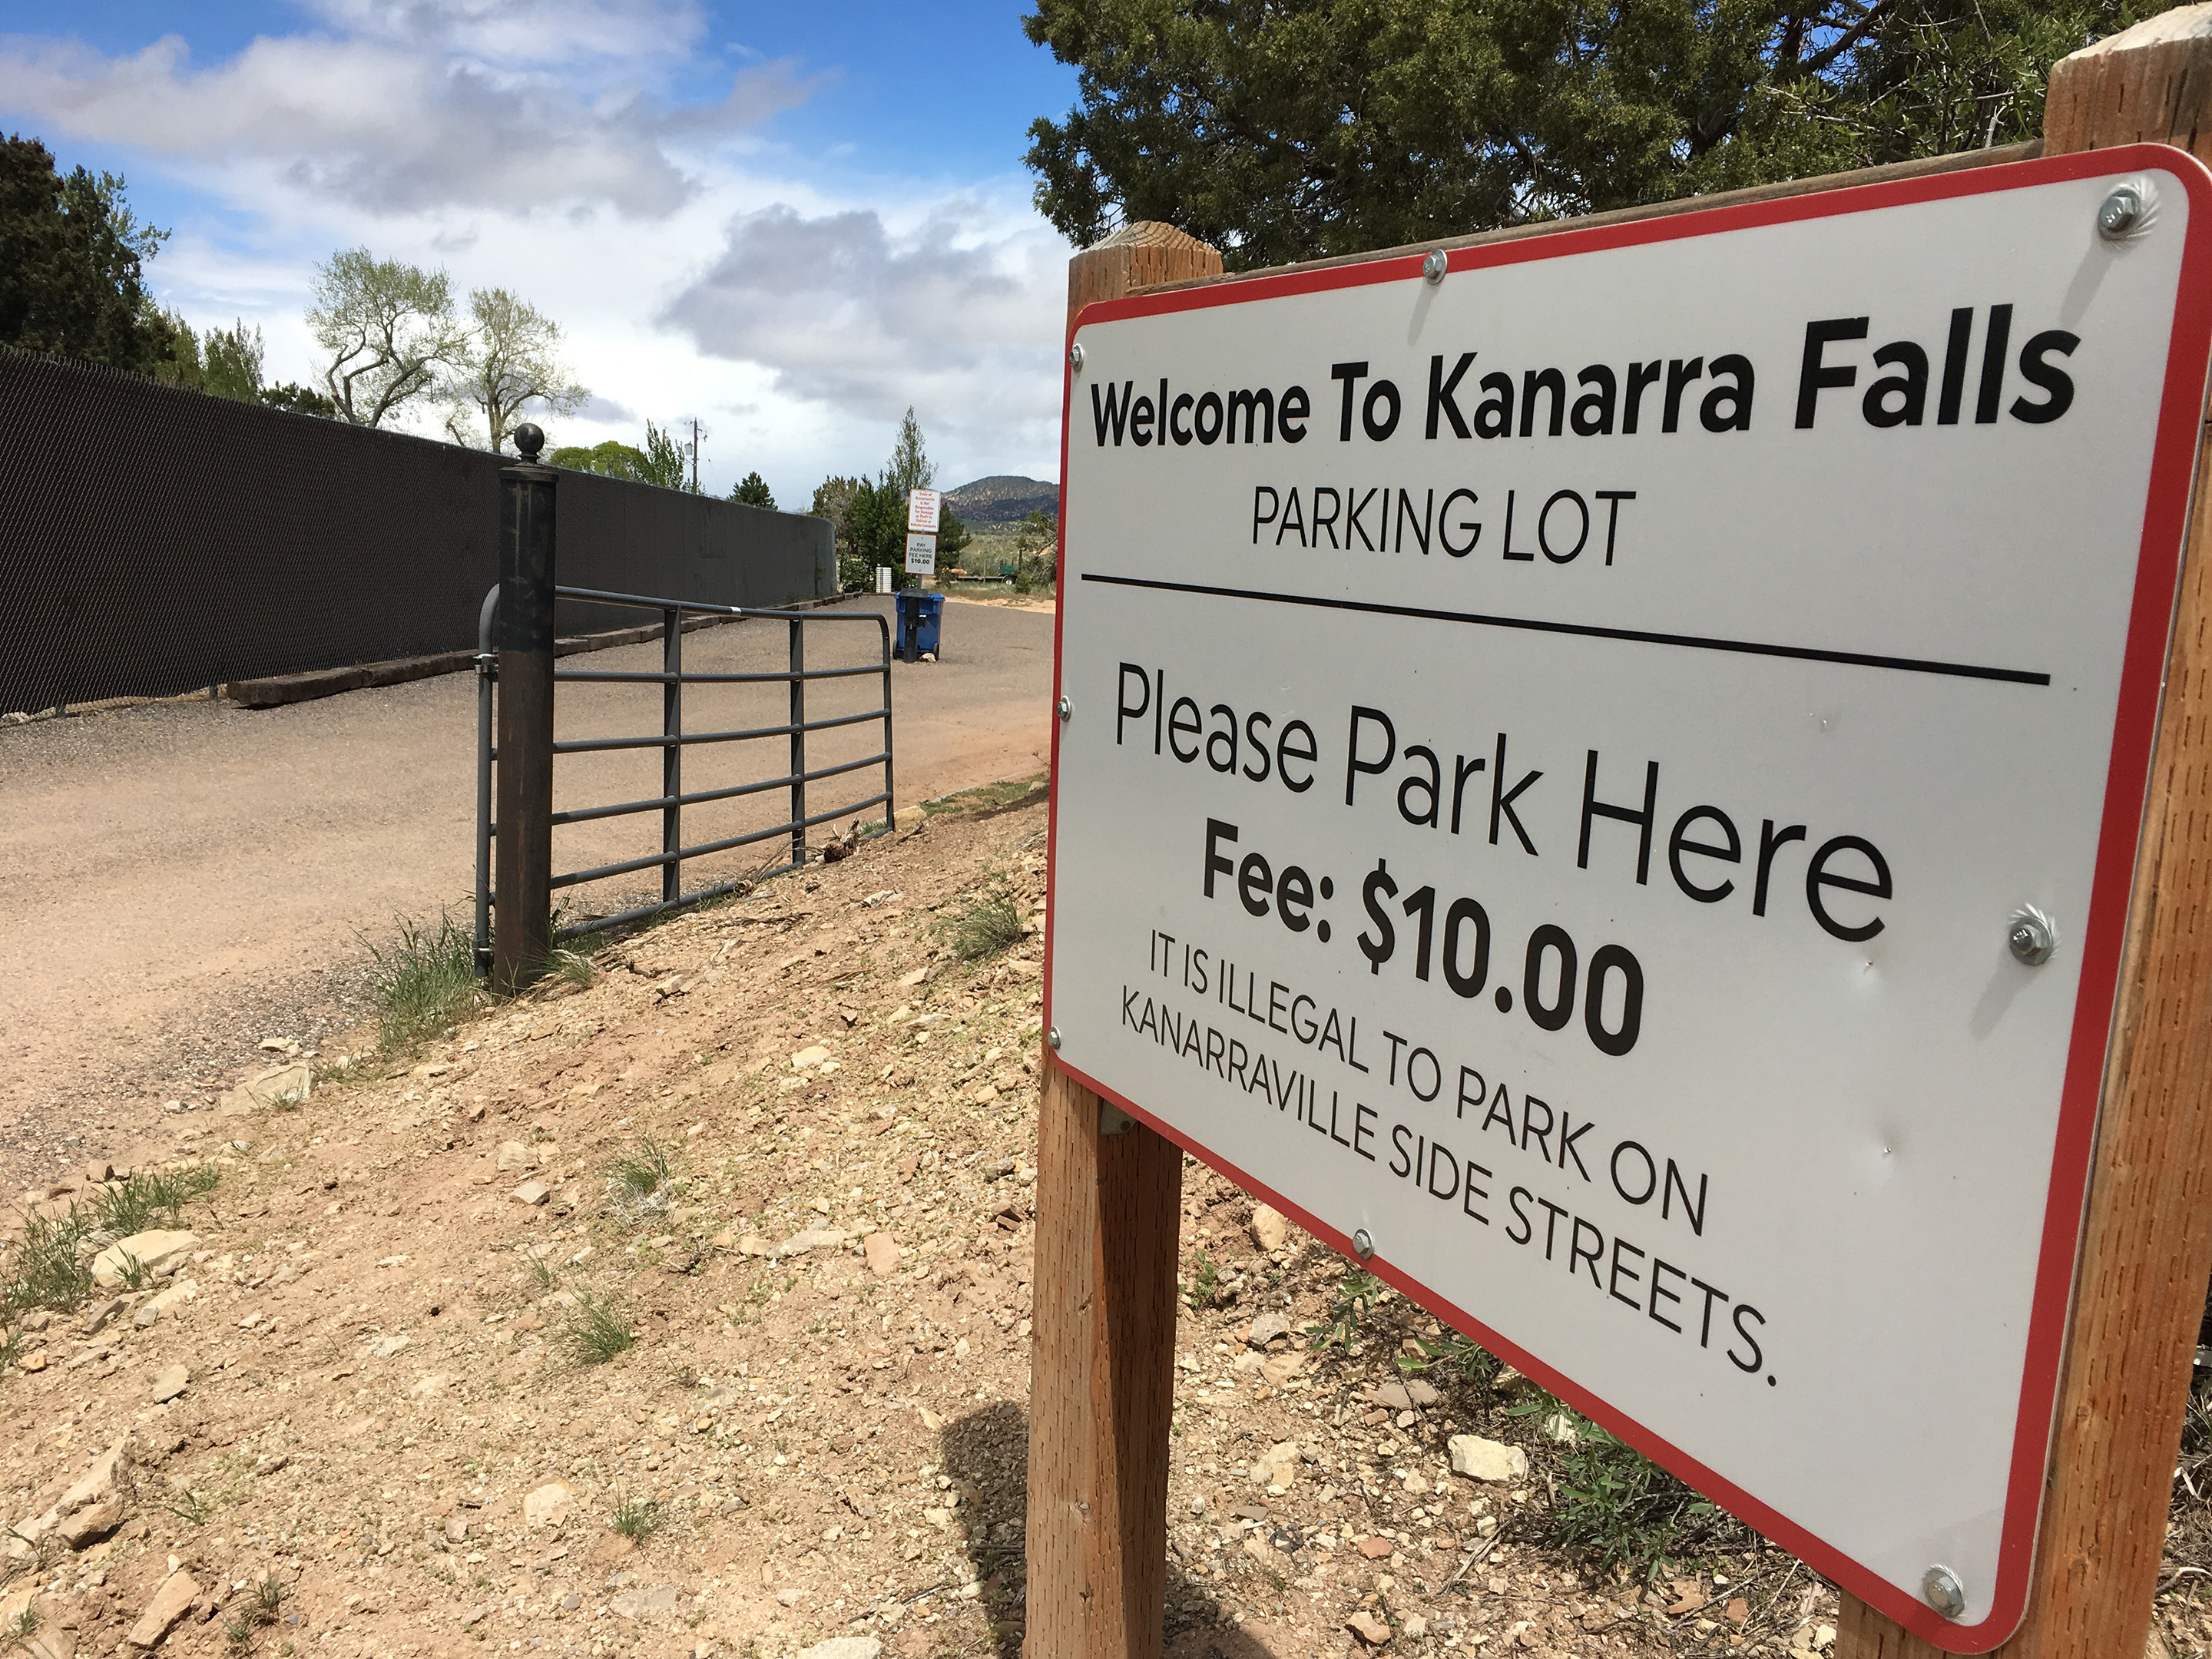 Kanarra Falls parking lot